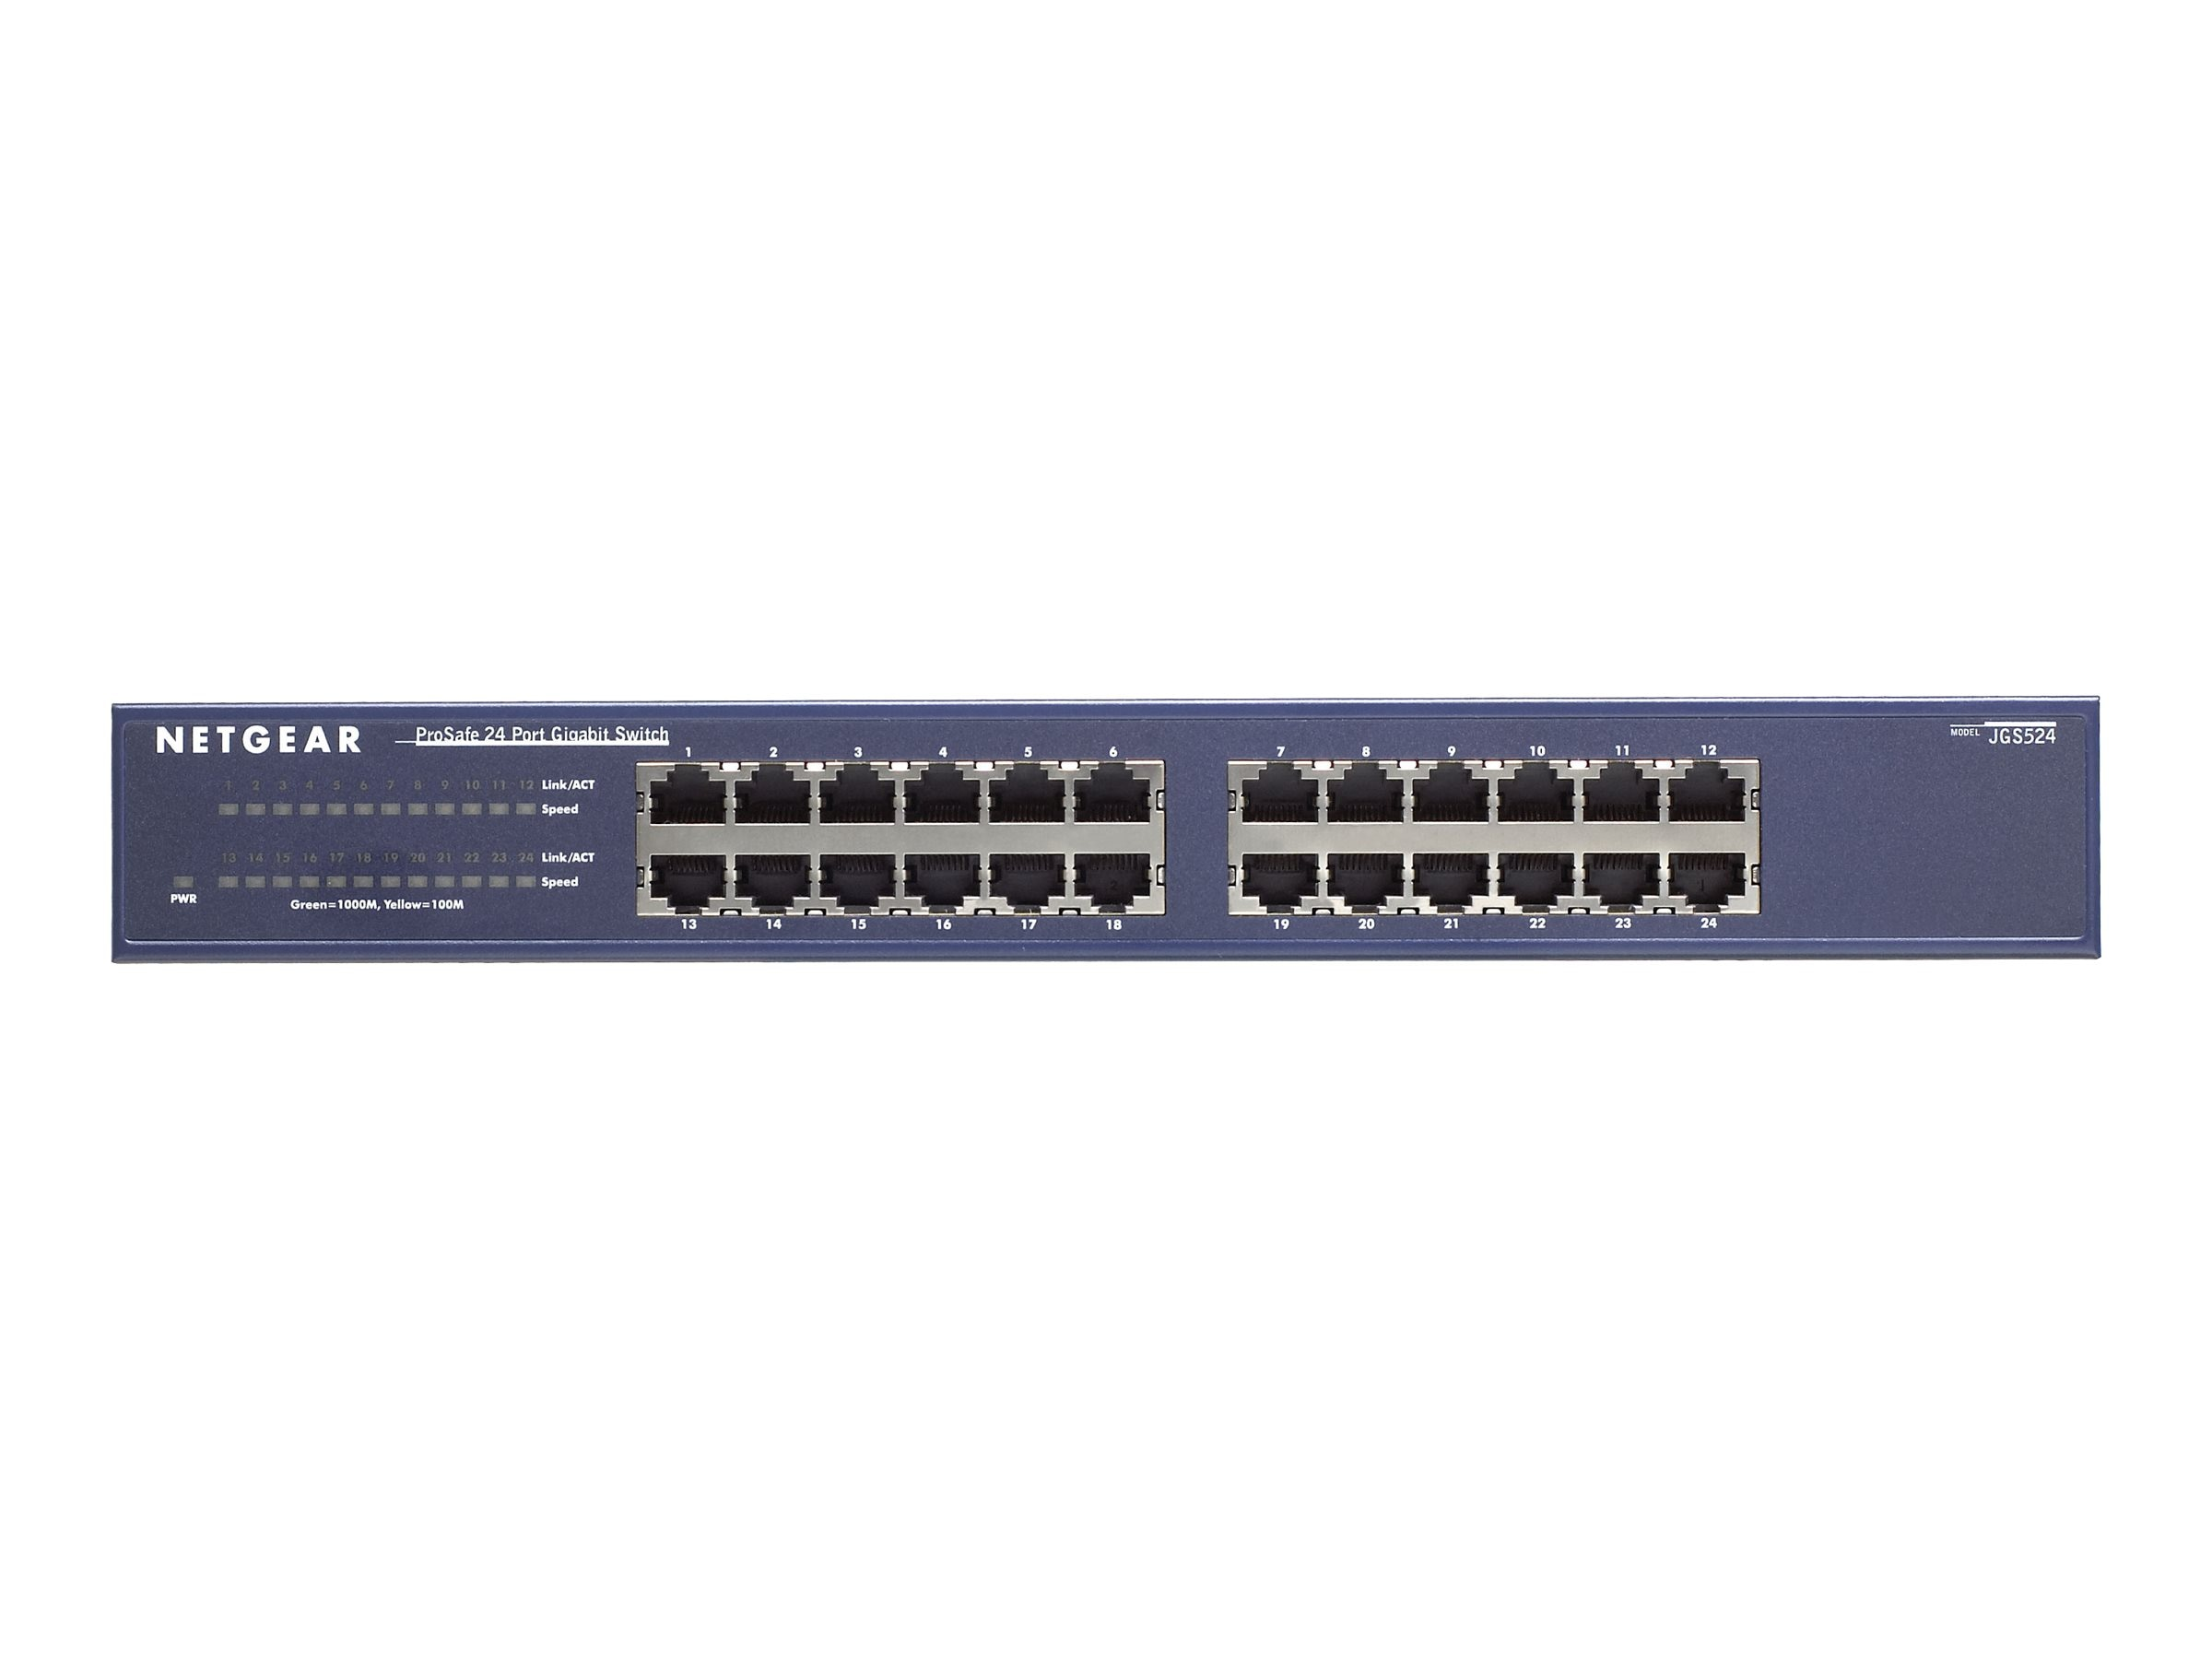 Netgear 24-port Gigabit Ethernet Switch, JGS524NA